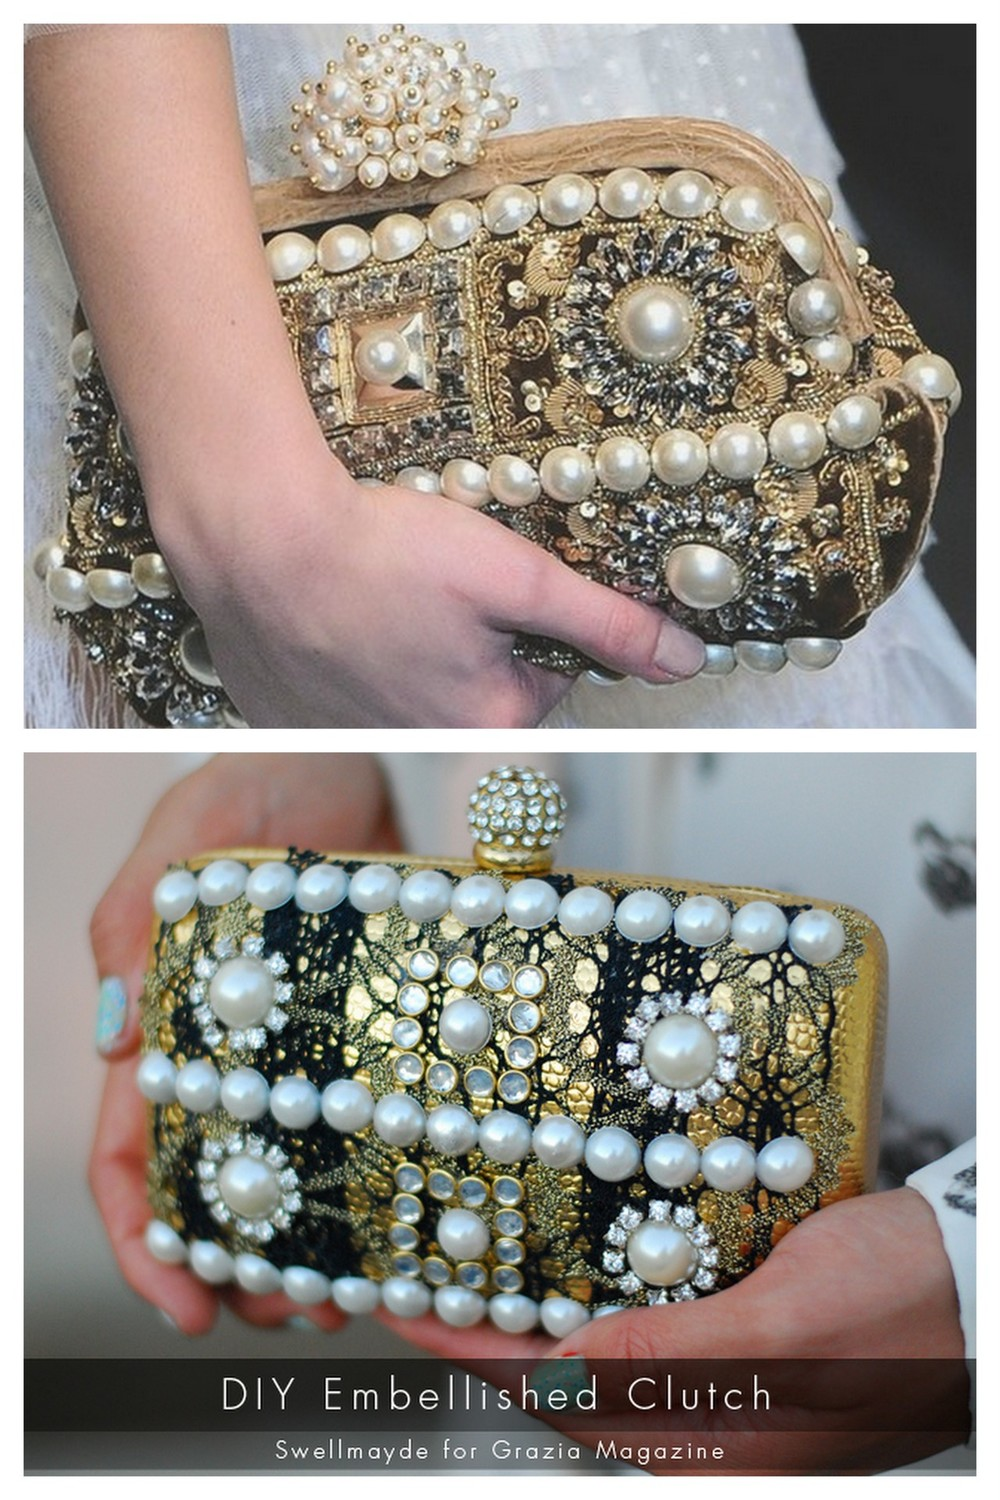 """truebluemeandyou: DIY Dolce & Gabbana Inspired Embellished Clutch Tutorial from Swellmayde here.Really clear and easy to do tutorial. Top Photo: Dolce & Gabbana Embellished clutch here, Bottom Photo: DIY by Swellmayde. For other knockoff or """"inspired by"""" tutorials go here: truebluemeandyou.tumblr.com/tagged/knockoff"""